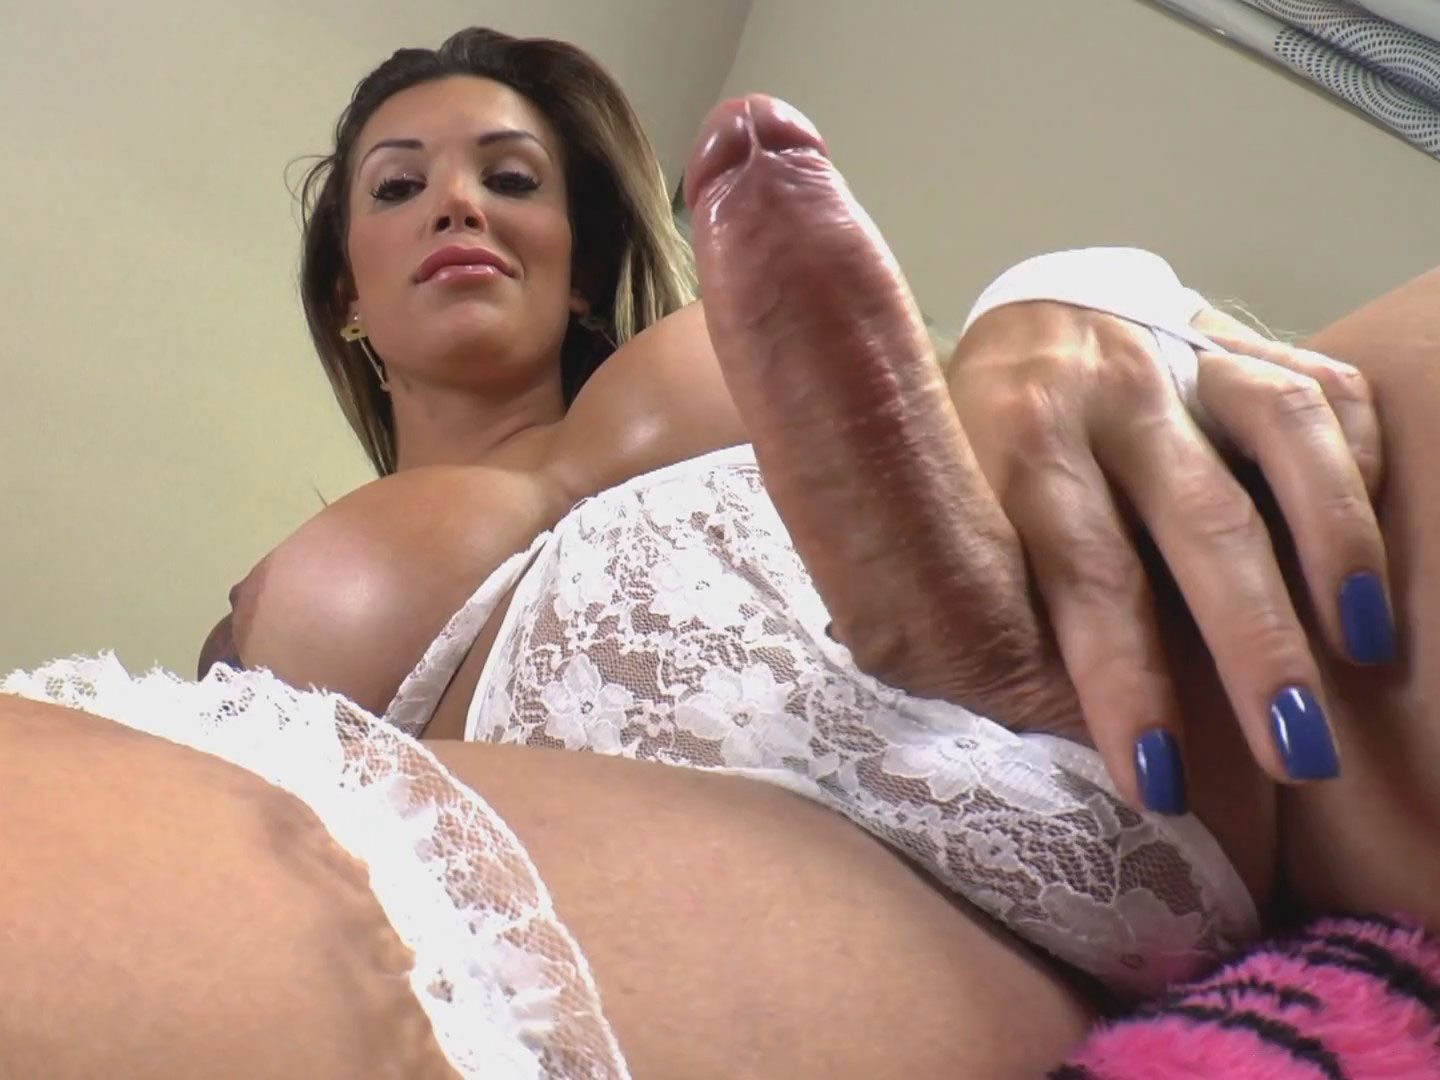 Playful Russian Shemale With Fat Titties Strokes Her Fat Cock